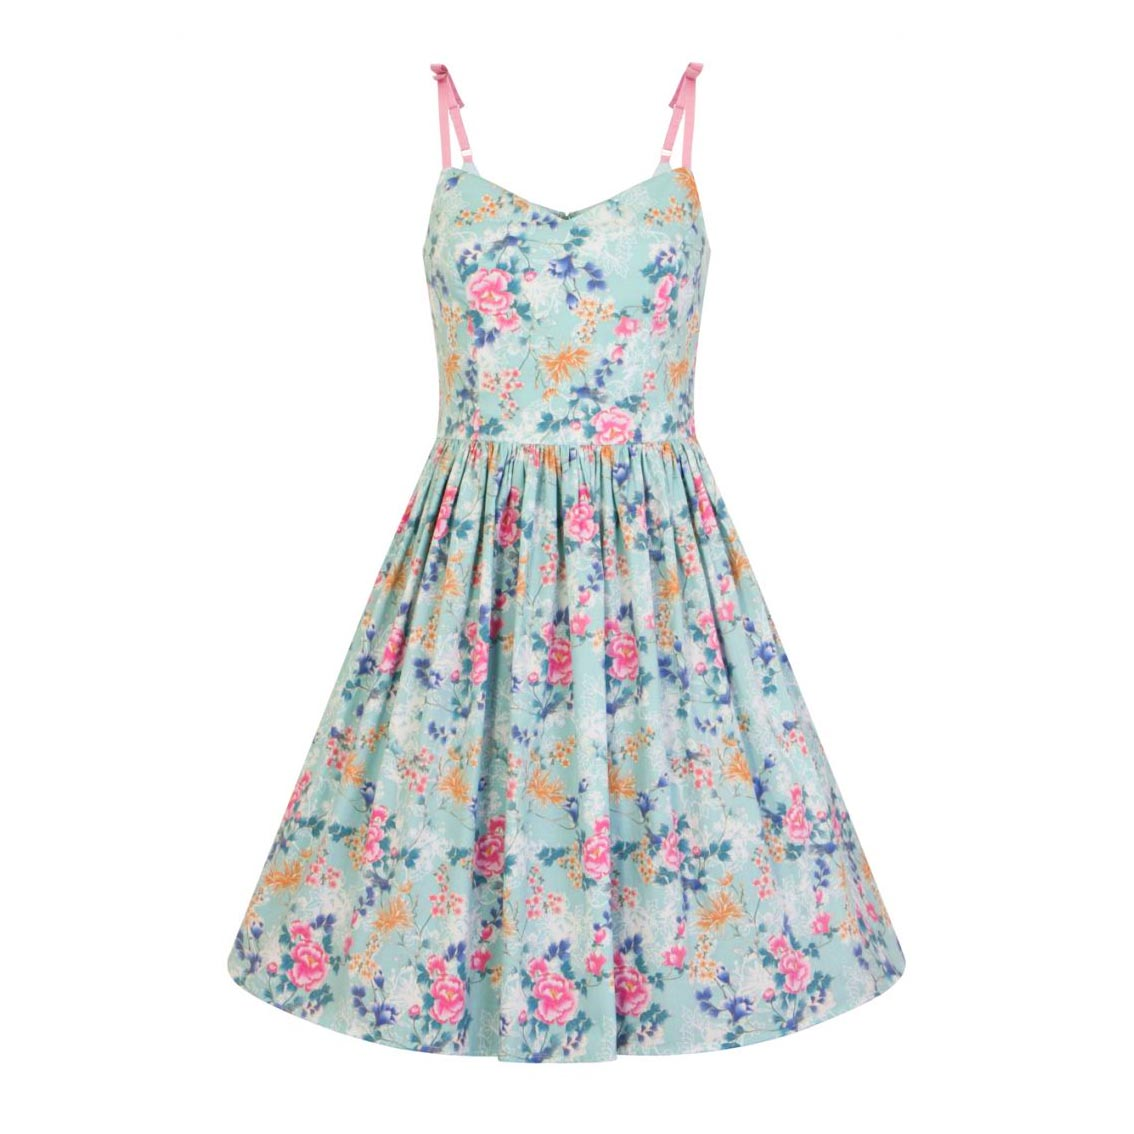 Hell-Bunny-50s-Mid-Length-Dress-Vintage-Blue-Pink-SAKURA-Flowers-Roses-All-Sizes thumbnail 23